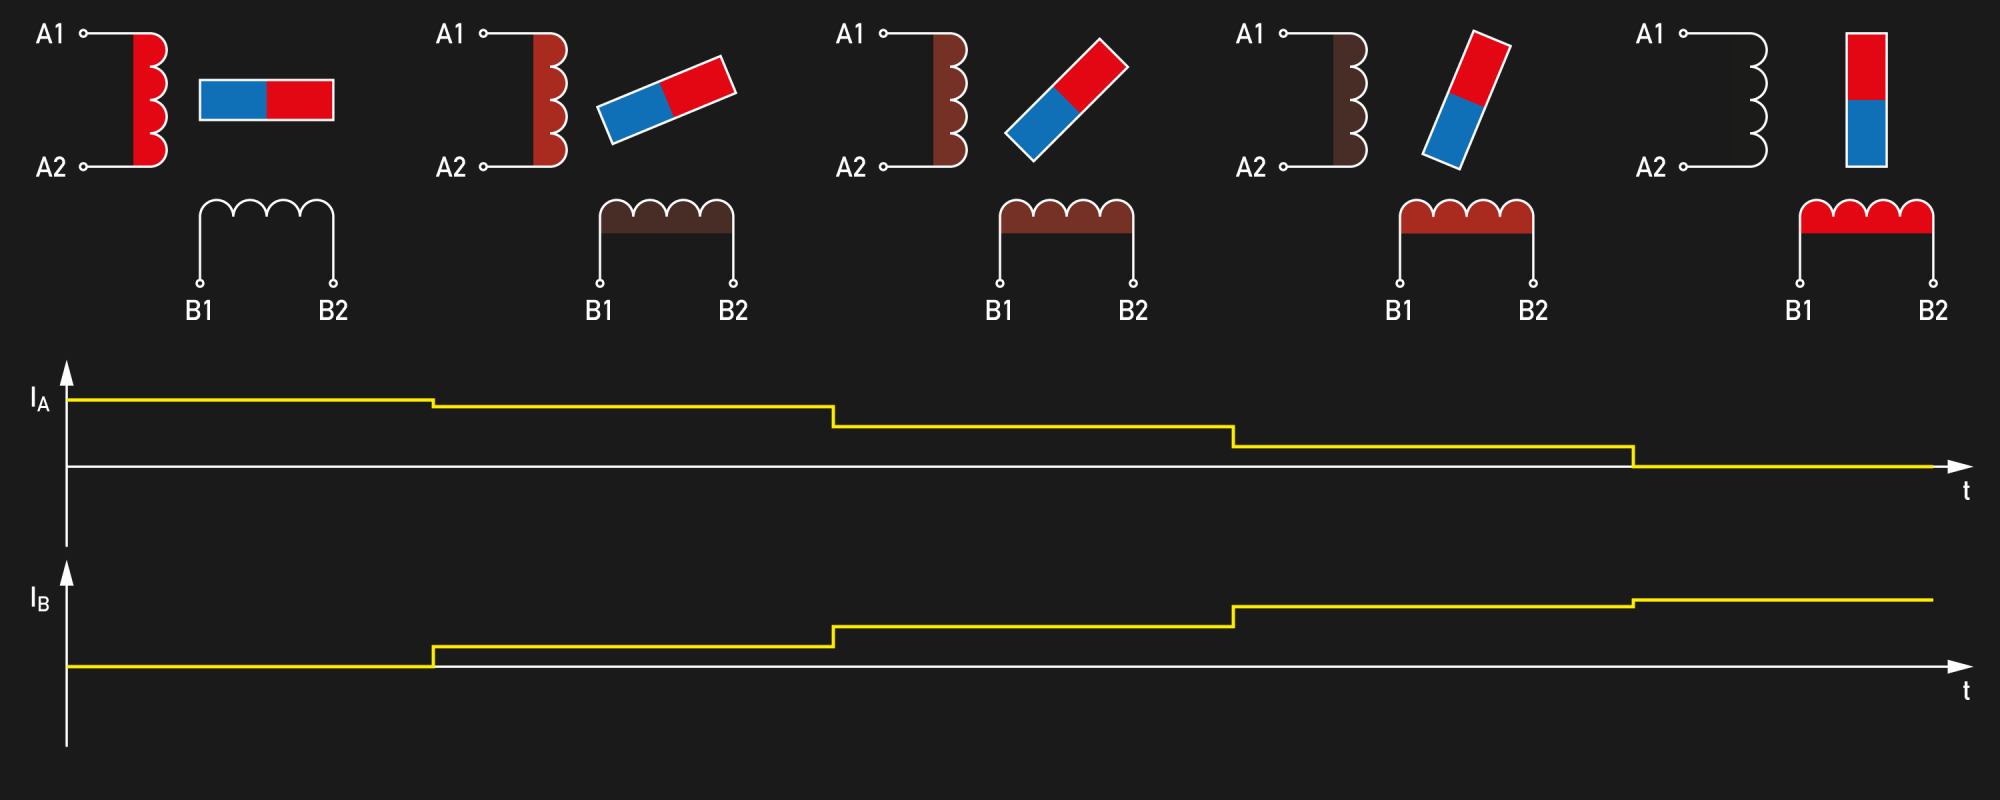 hight resolution of how accurate is microstepping really hackaday also 3 phase sine wave diagram besides 6 wire stepper motor wiring